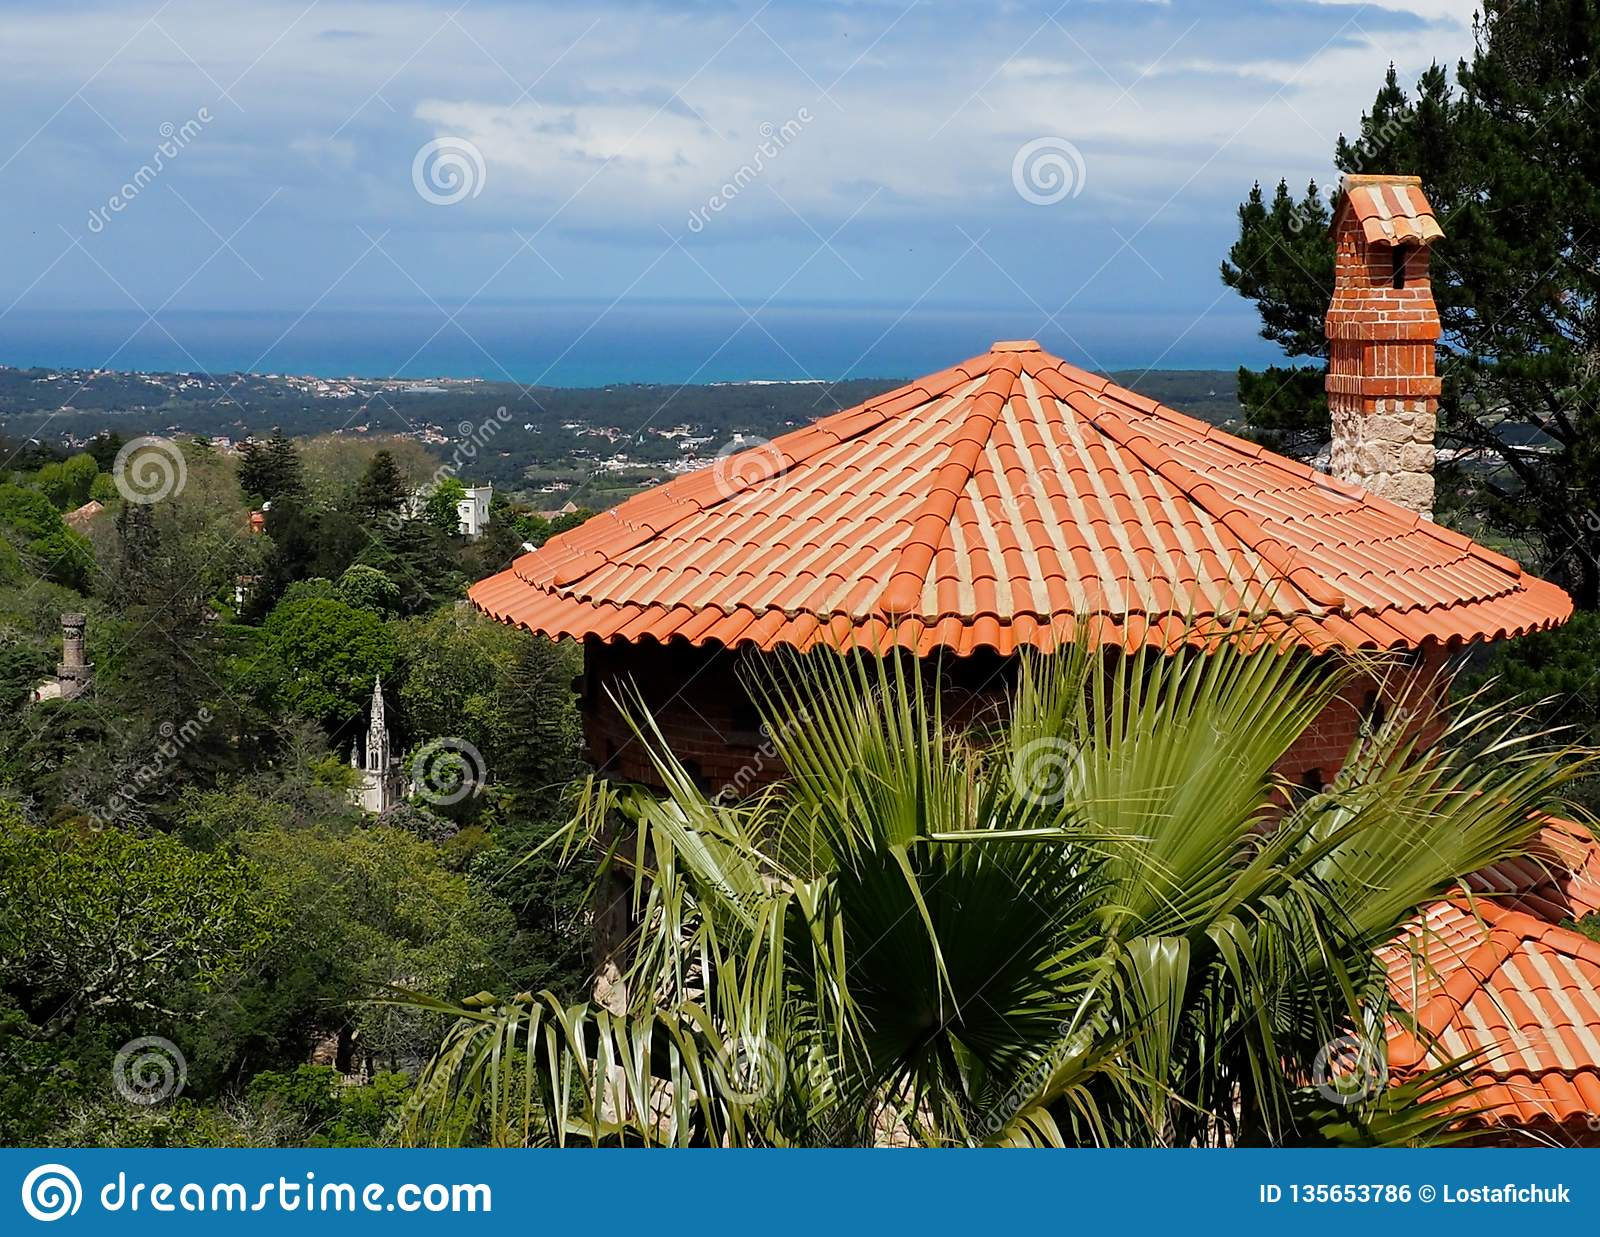 Architecture In Sintra Portugal Red Clay Tiled Roof